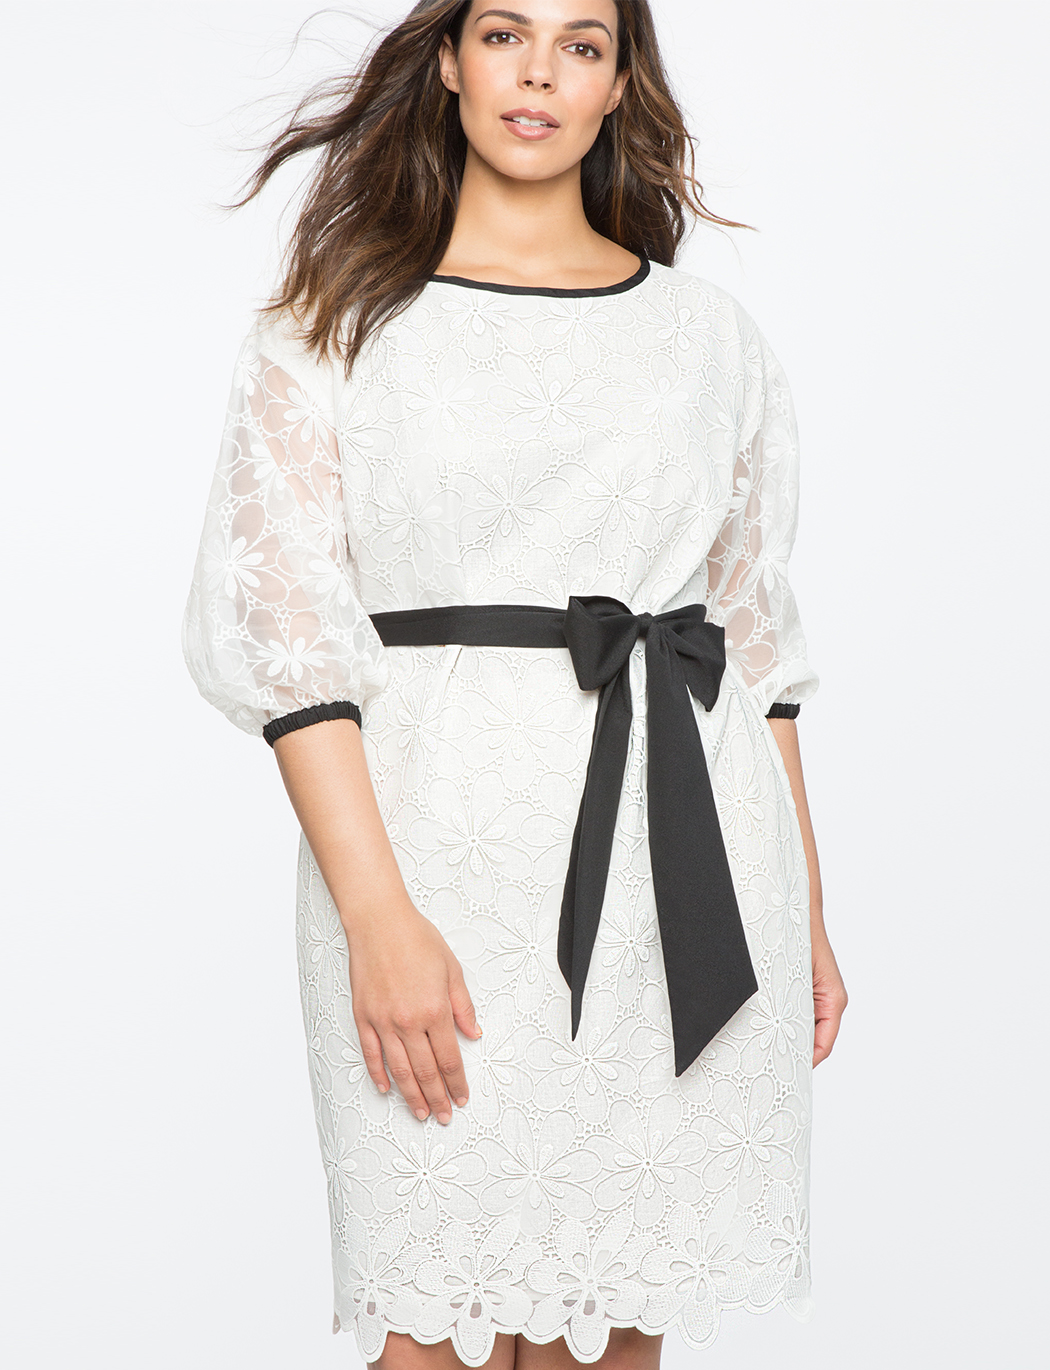 Floral Lace Dress with Contrast Piping | Women\'s Plus Size Dresses | ELOQUII